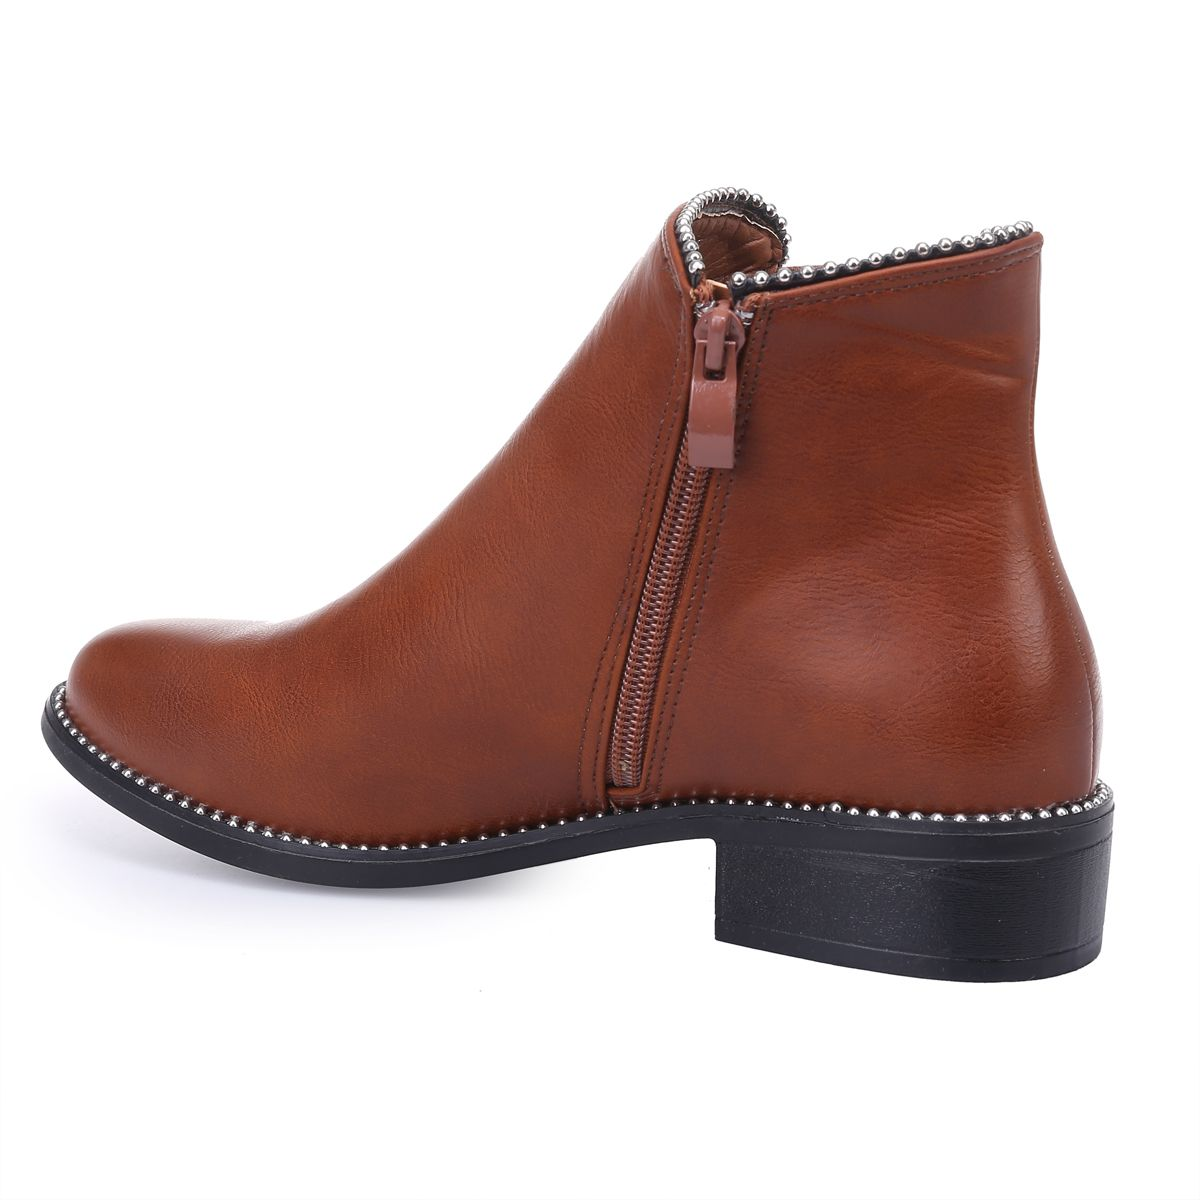 Bottines chelsea camel cloutées